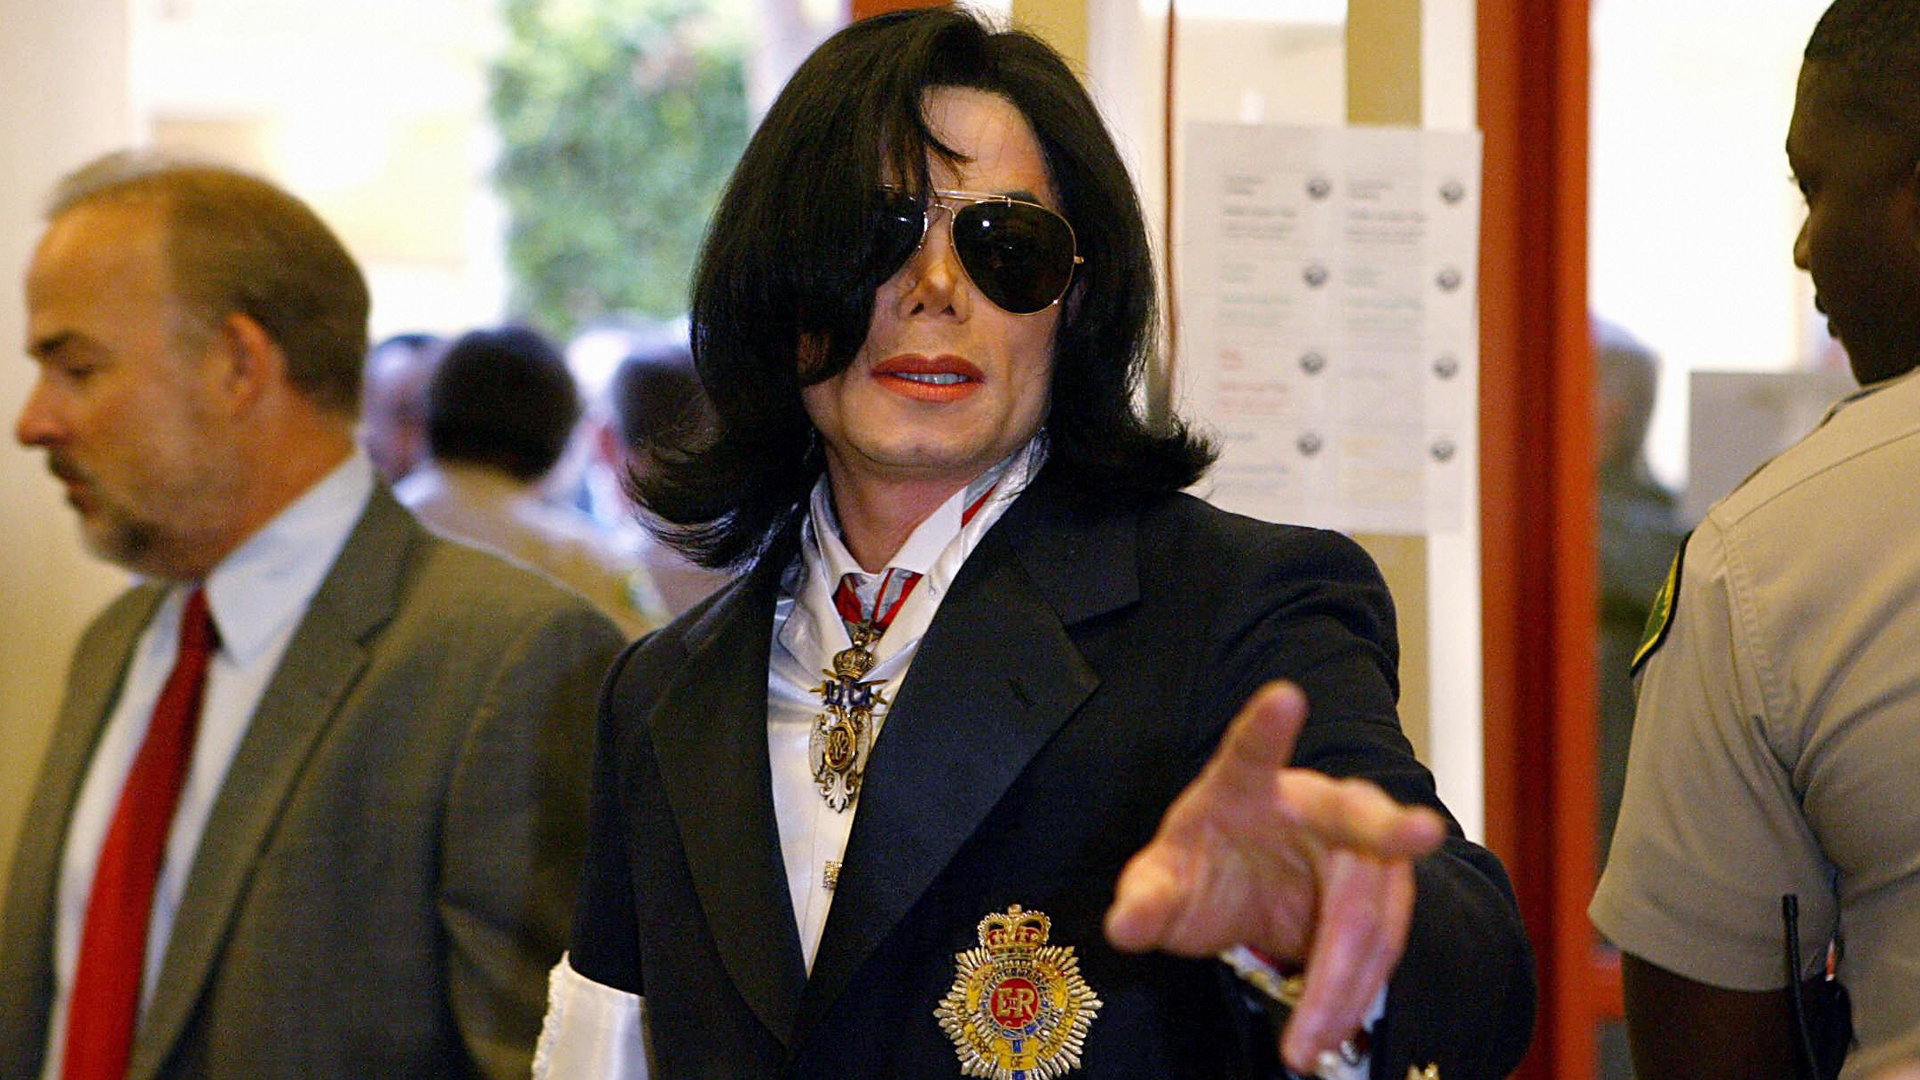 Pop star Michael Jackson enters, after a security check, the courthouse in Santa Maria, Calif., for his arraignment on child molestation charges, Jan. 16, 2004. (Credit: KEVORK DJANSEZIAN/AFP/Getty Images)